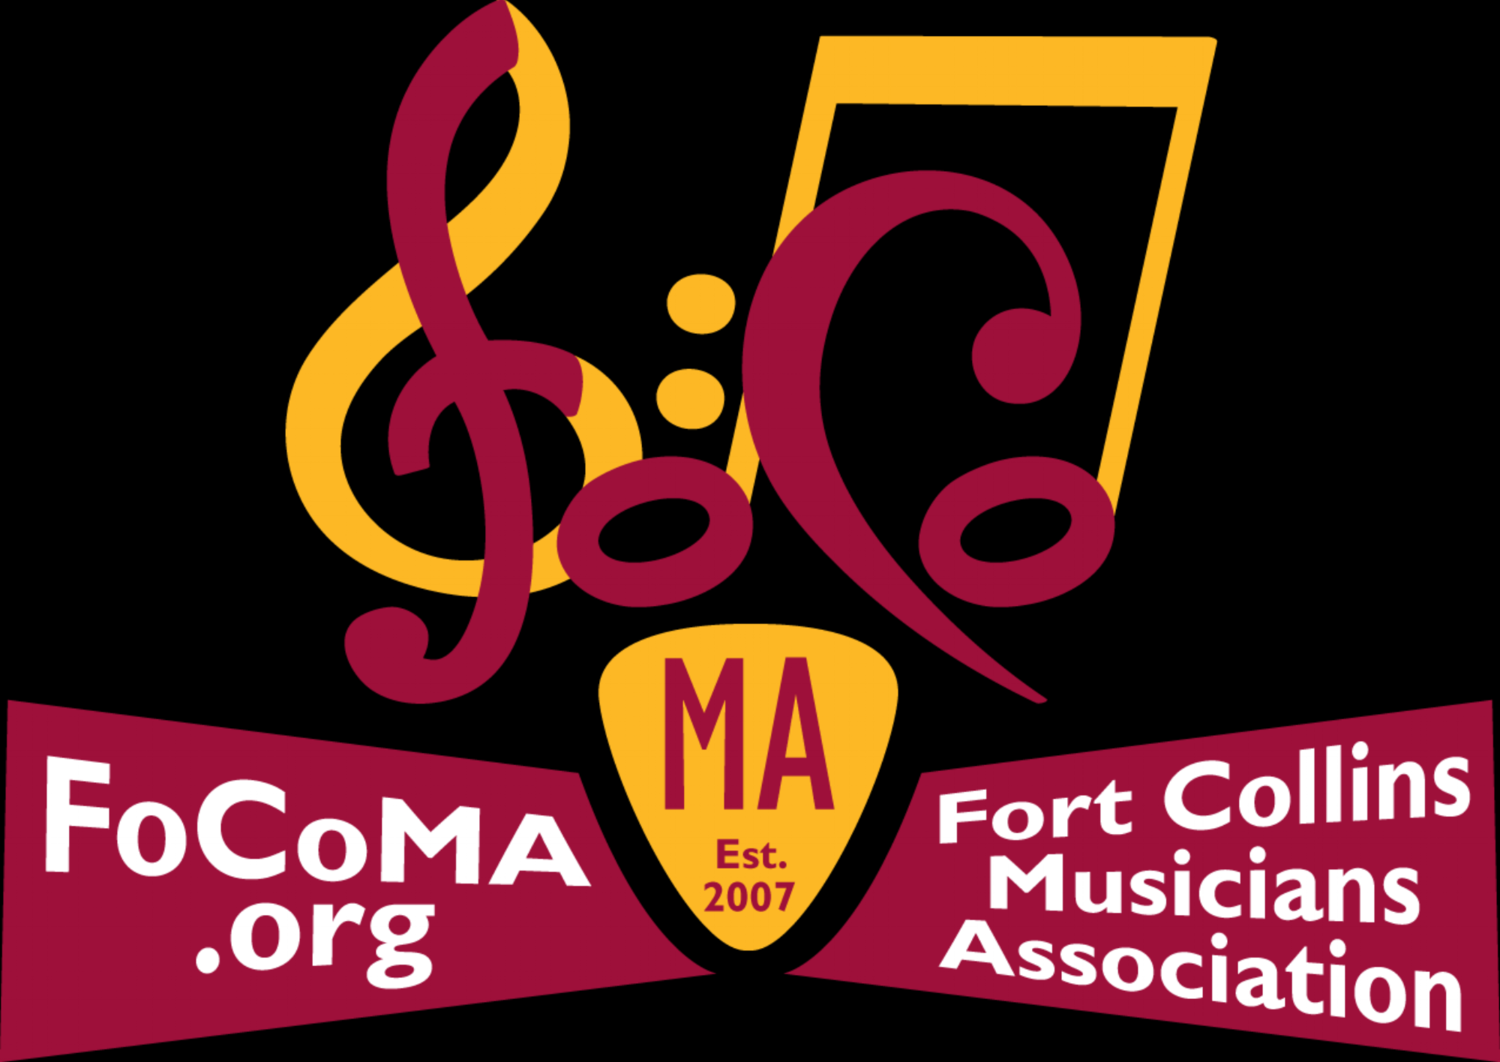 Fort Collins Musicians Association